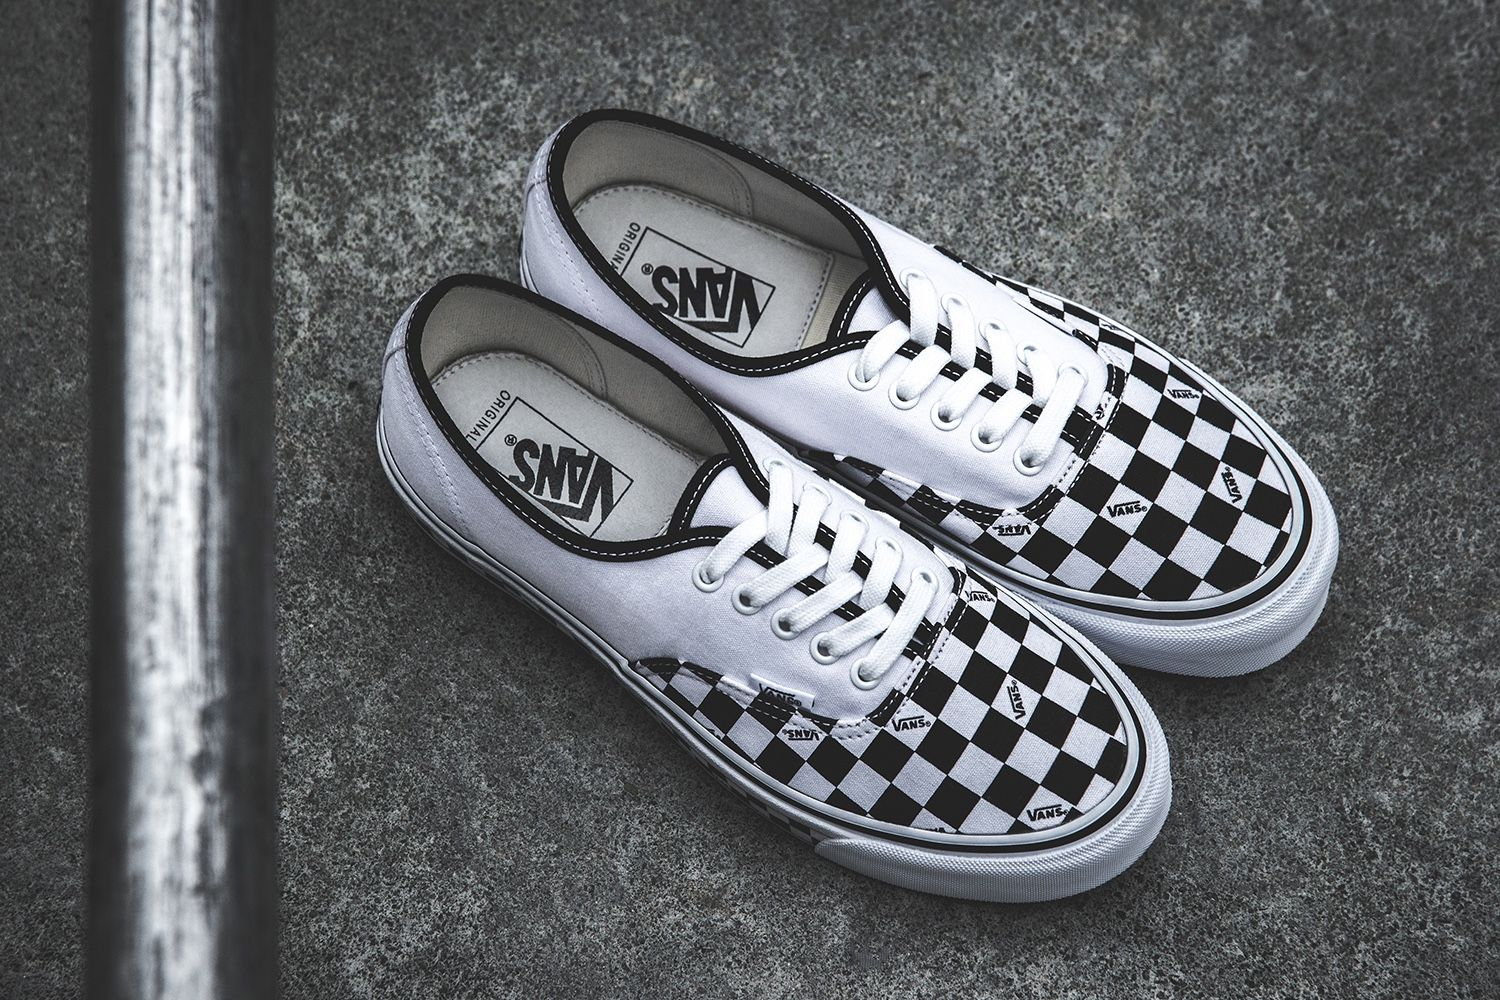 dae8702a1d6215 Vans Vault OG Authentic LX X Neighborhood